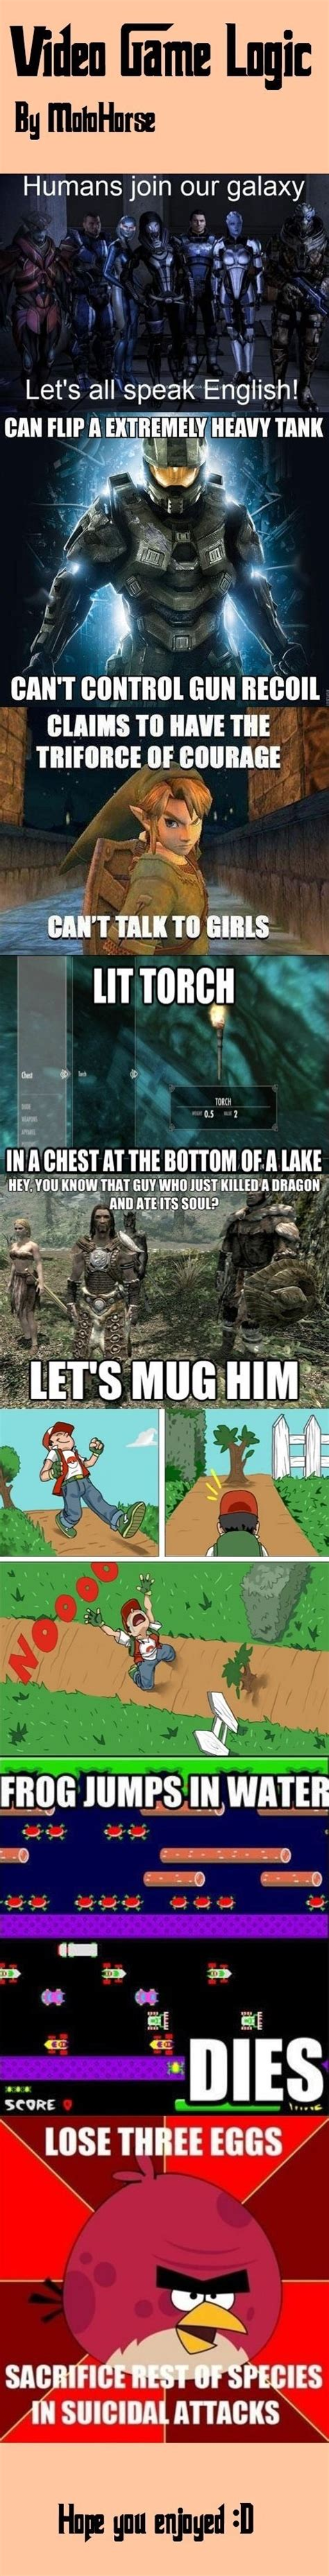 Funny Meme Games - funny video game logic memes jpg